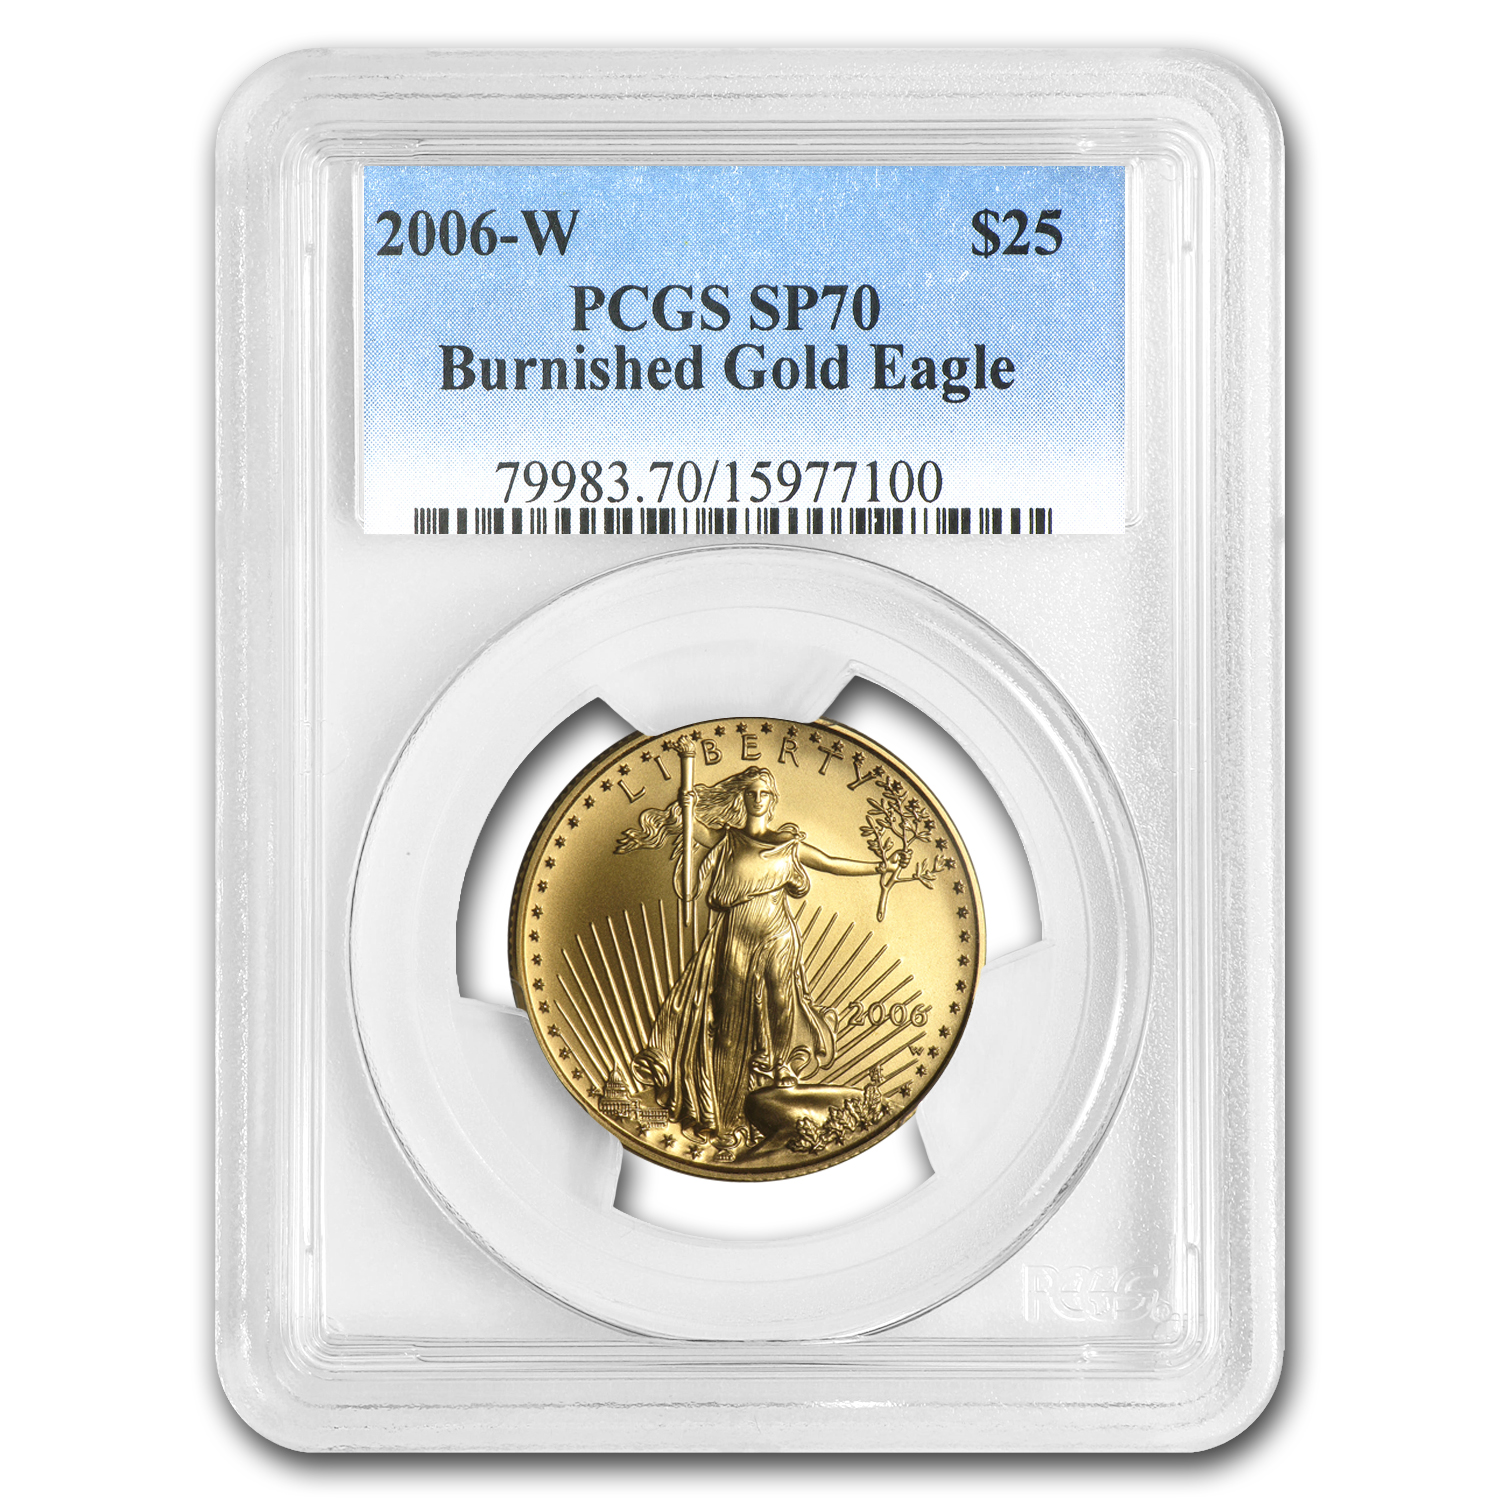 2006-W 1/2 oz Burnished Gold American Eagle SP-70 PCGS